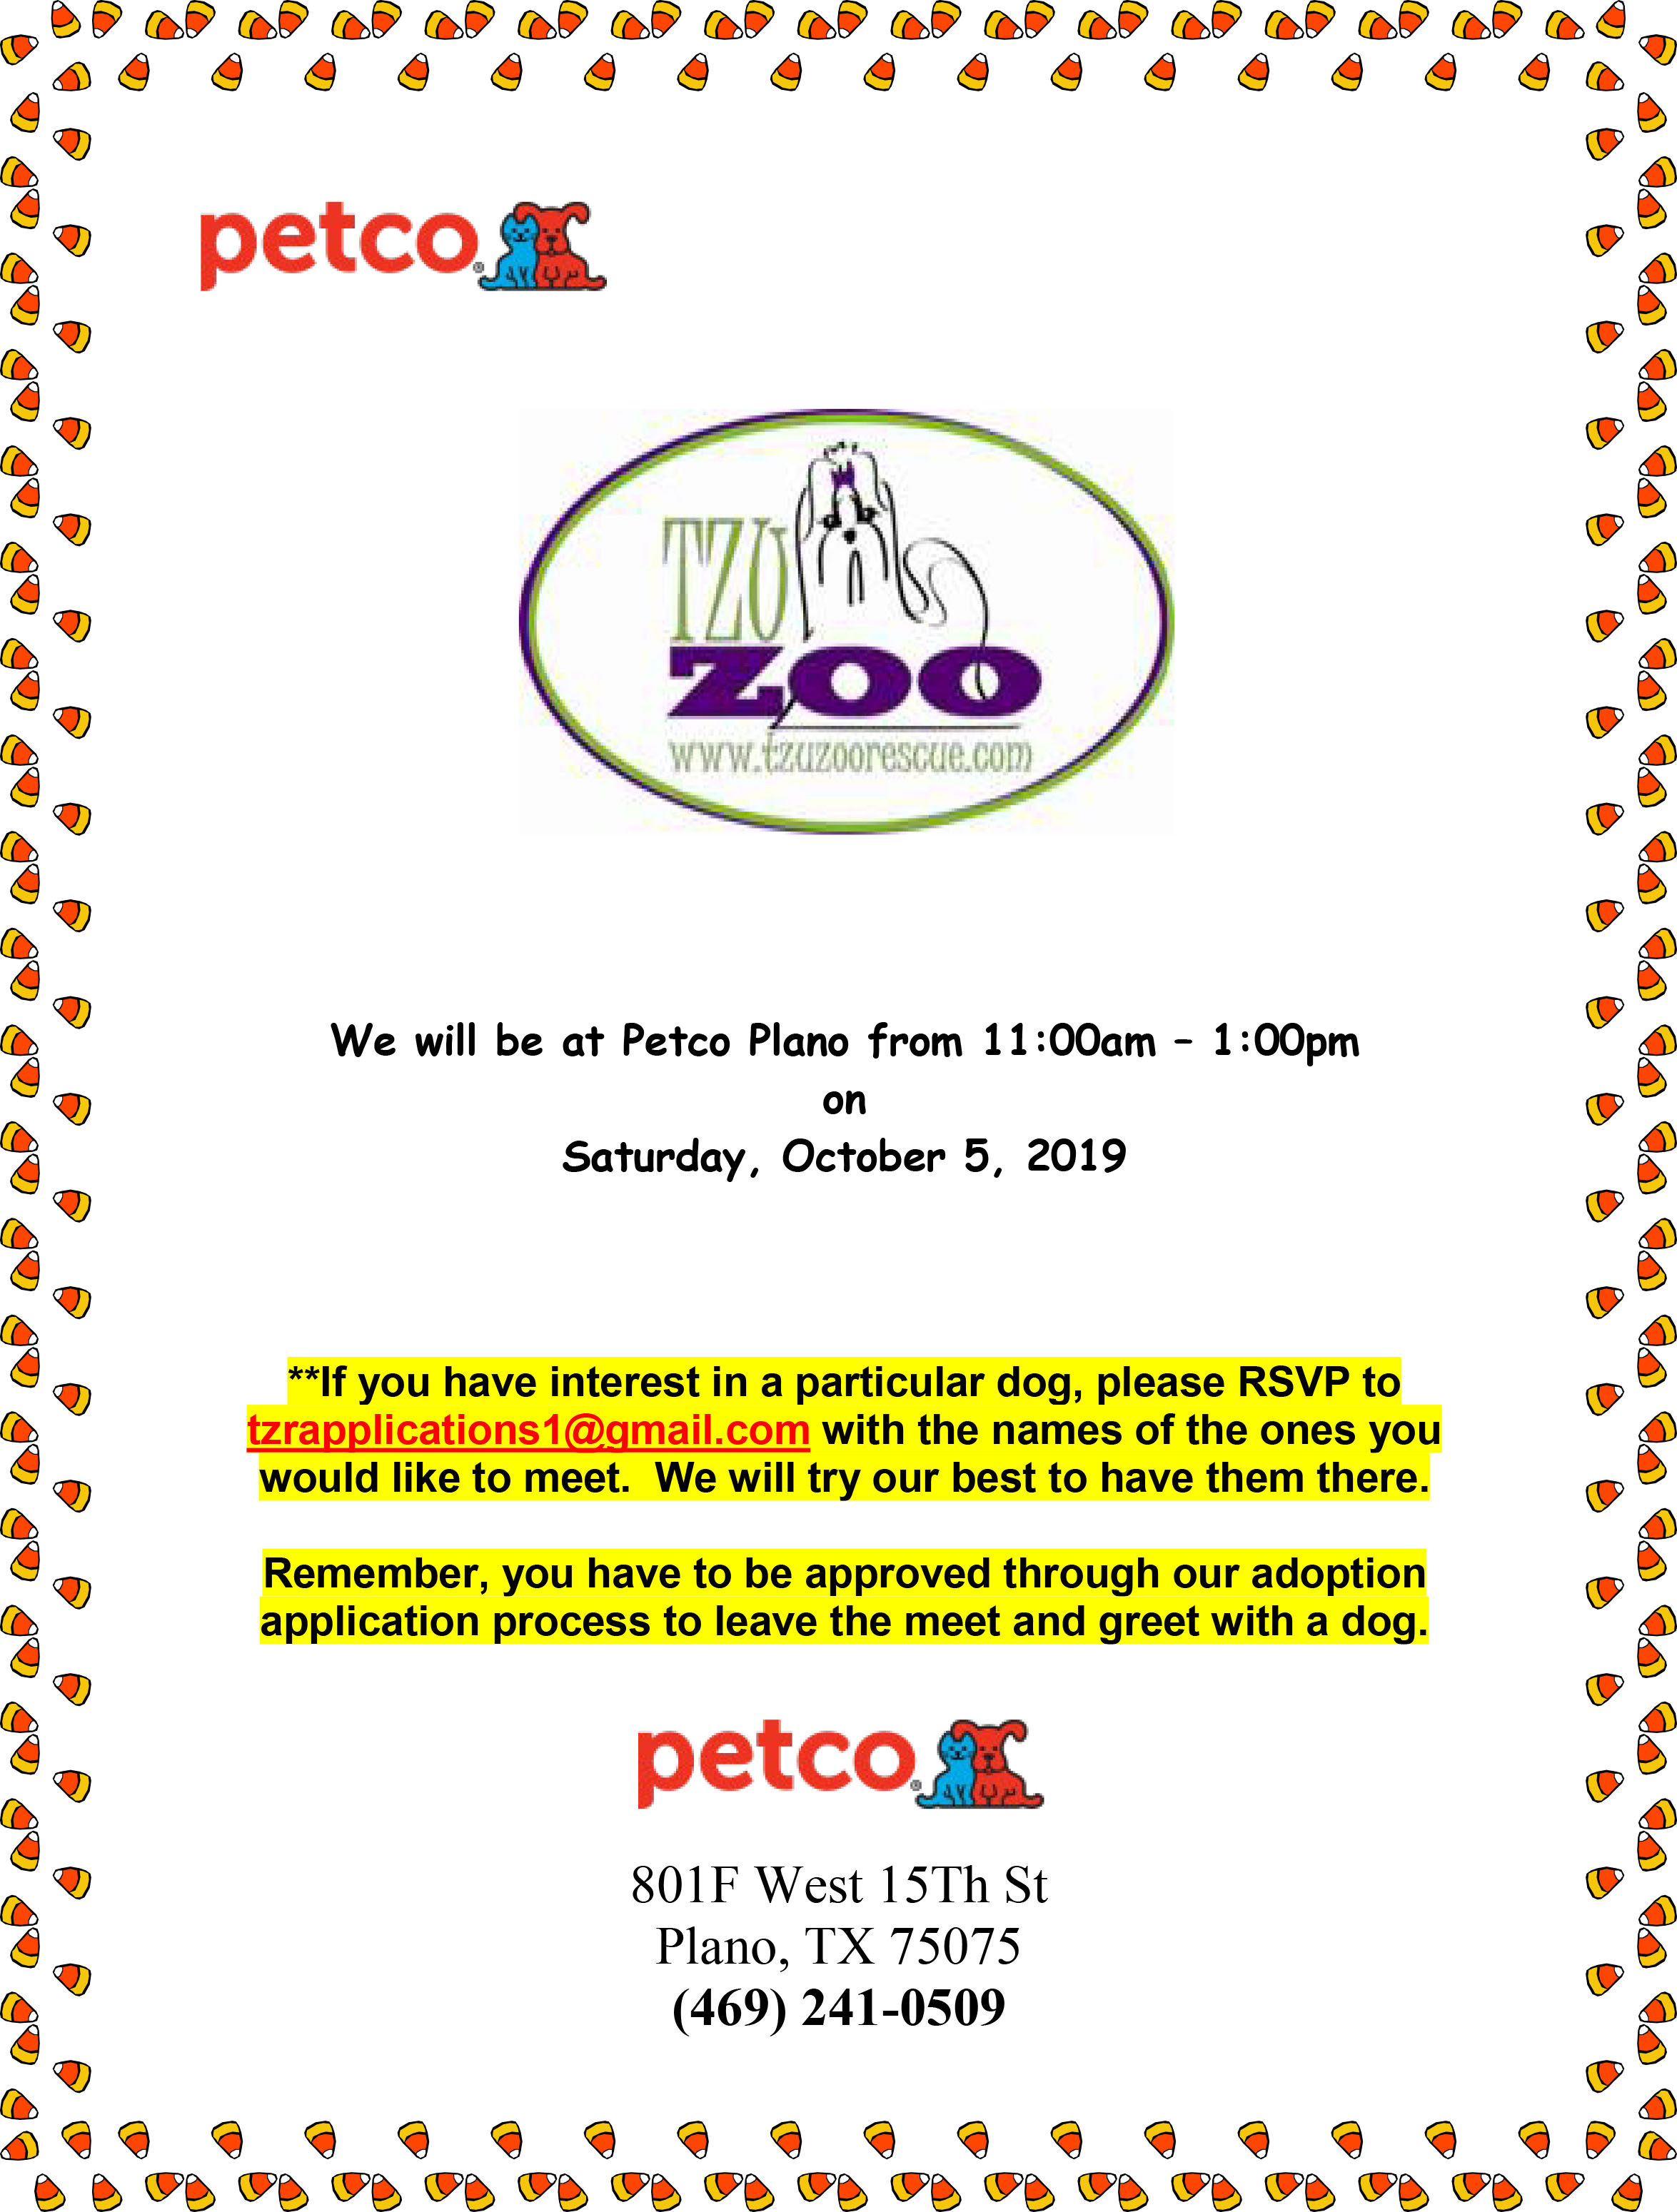 Meet & Greet - Petco, Plano